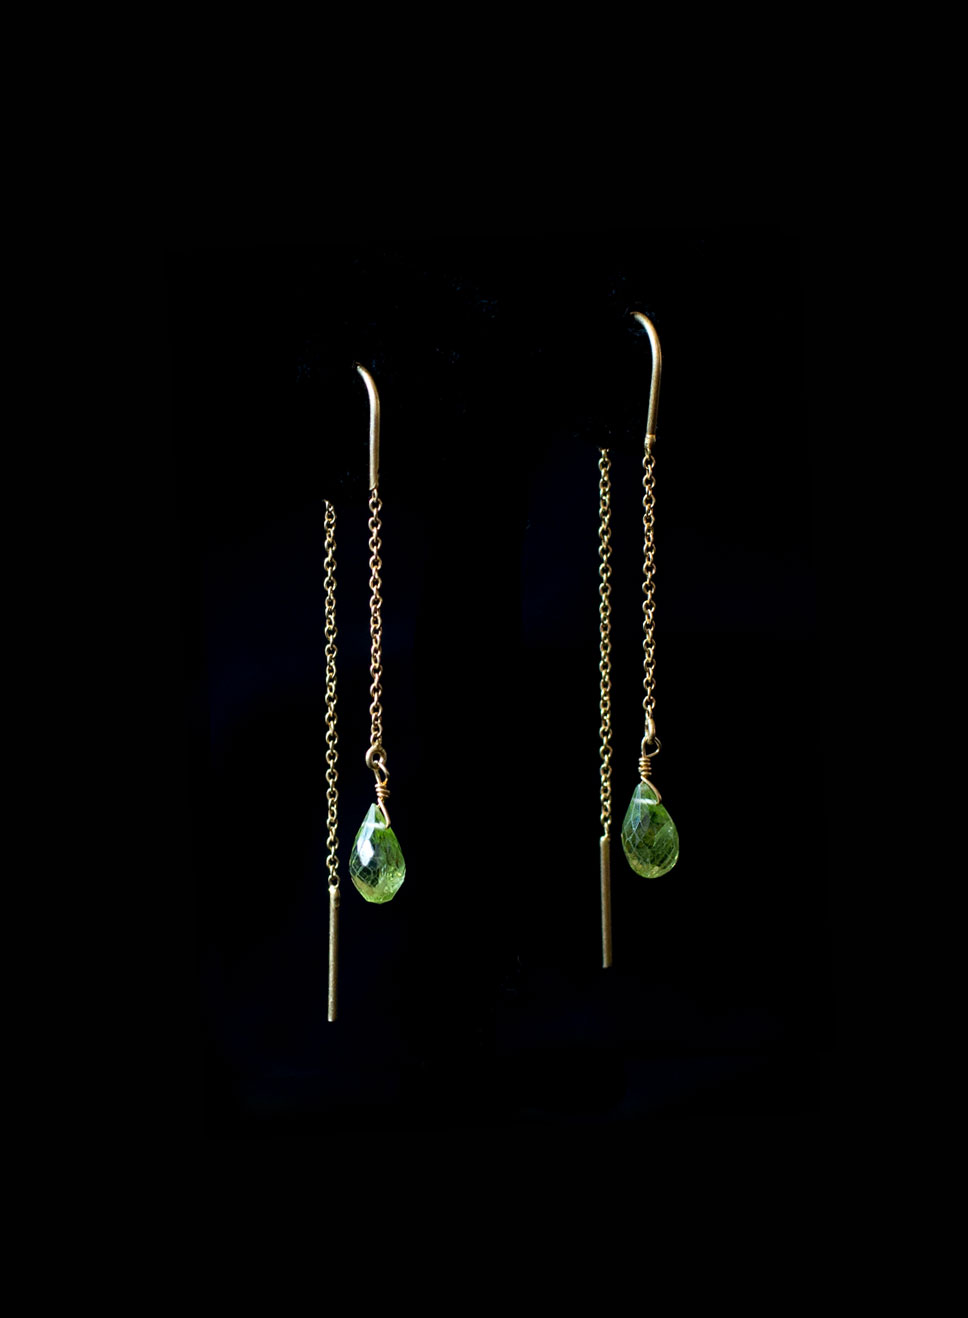 Gold plated silver needle chain with peridot drop gems Also available smoky quartz, amethyst and aqua marine. Earring length-6cm.